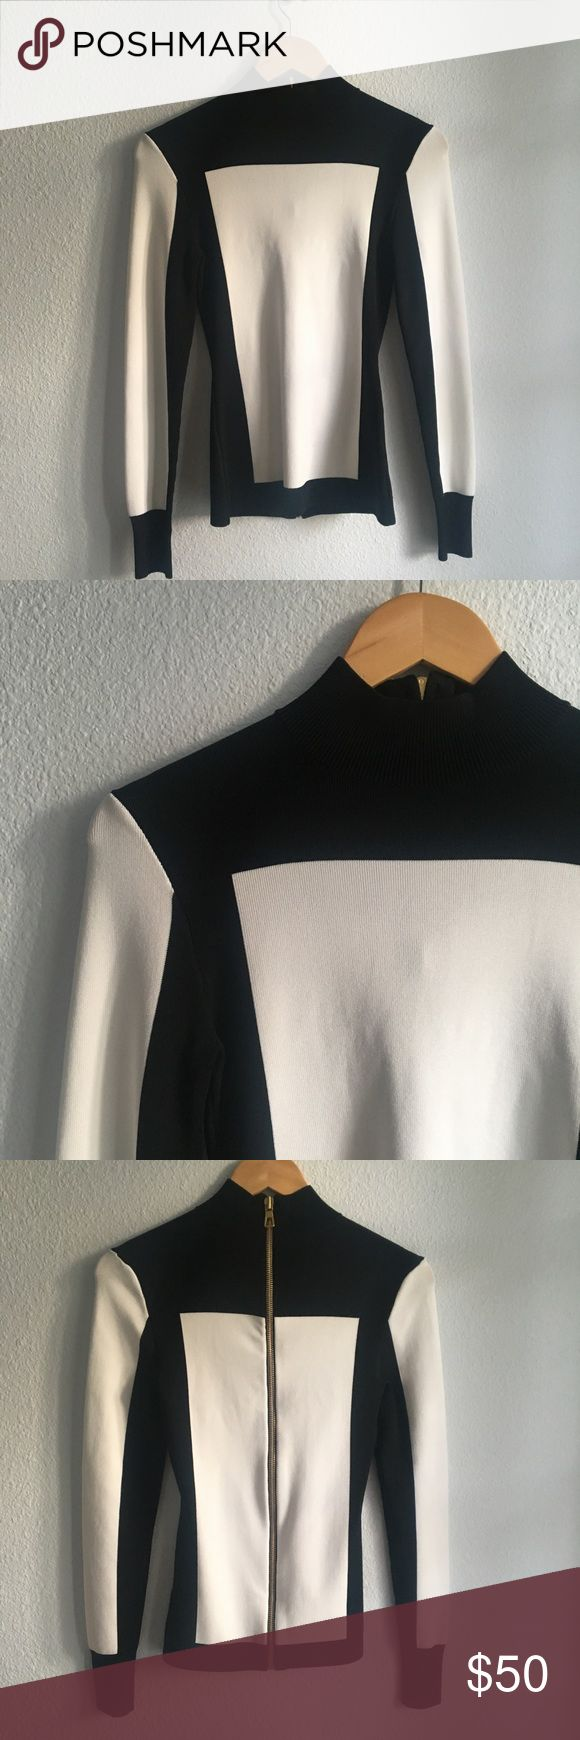 Balmain Sweater Balmain for h&m heavy knit sweater. Black and white with a large gold zipper on the back. Never worn. In new condition. Size 6 Balmain Sweaters Crew & Scoop Necks